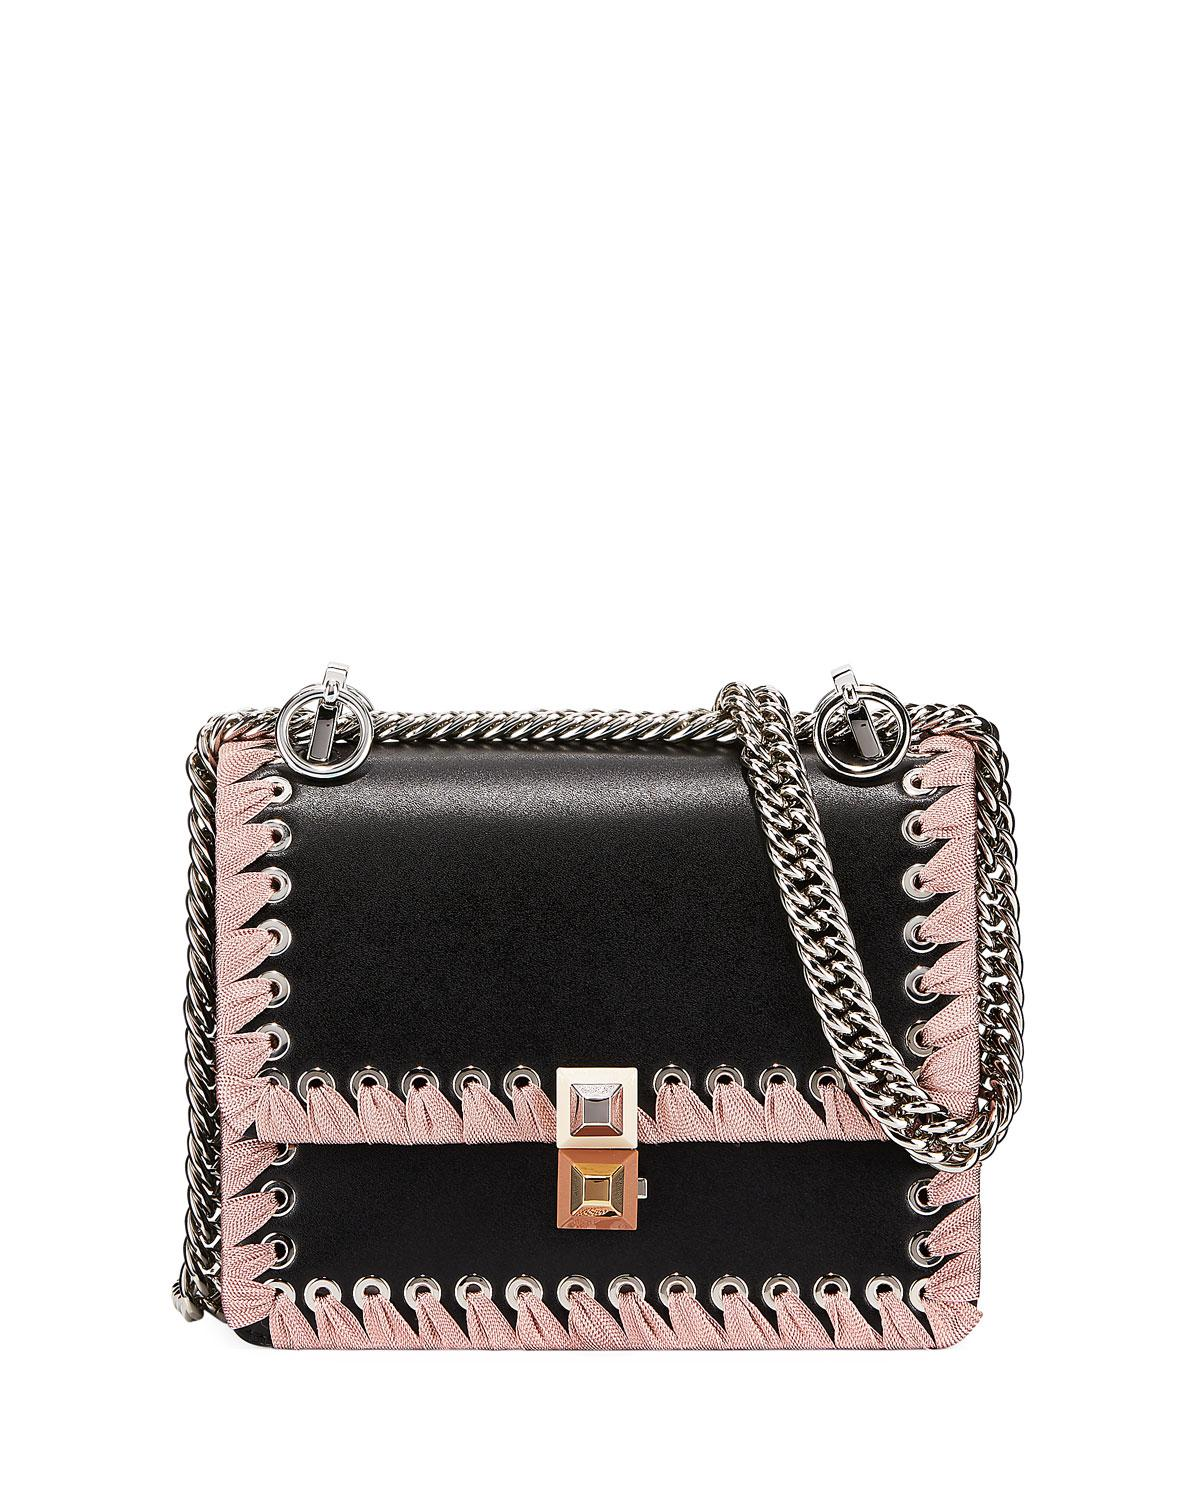 53c936bb80 Lyst - Fendi Kan I Ribbon Whipstitch Small Shoulder Bag in Black ...